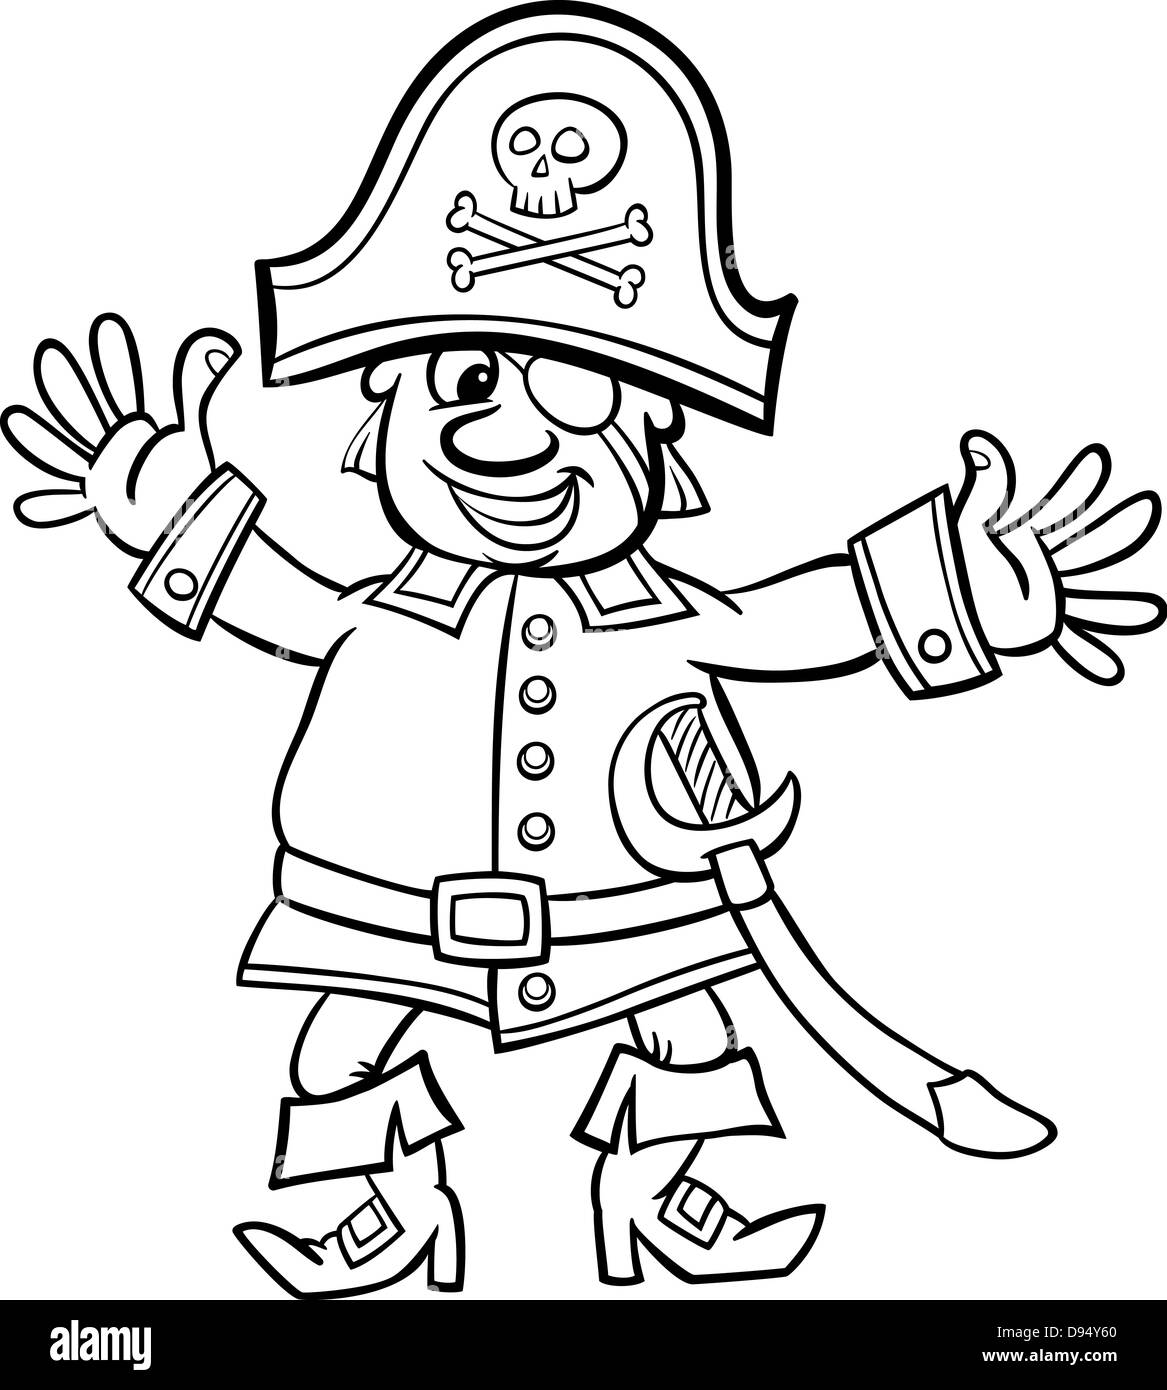 pirate coloring pages cartoon - photo#35